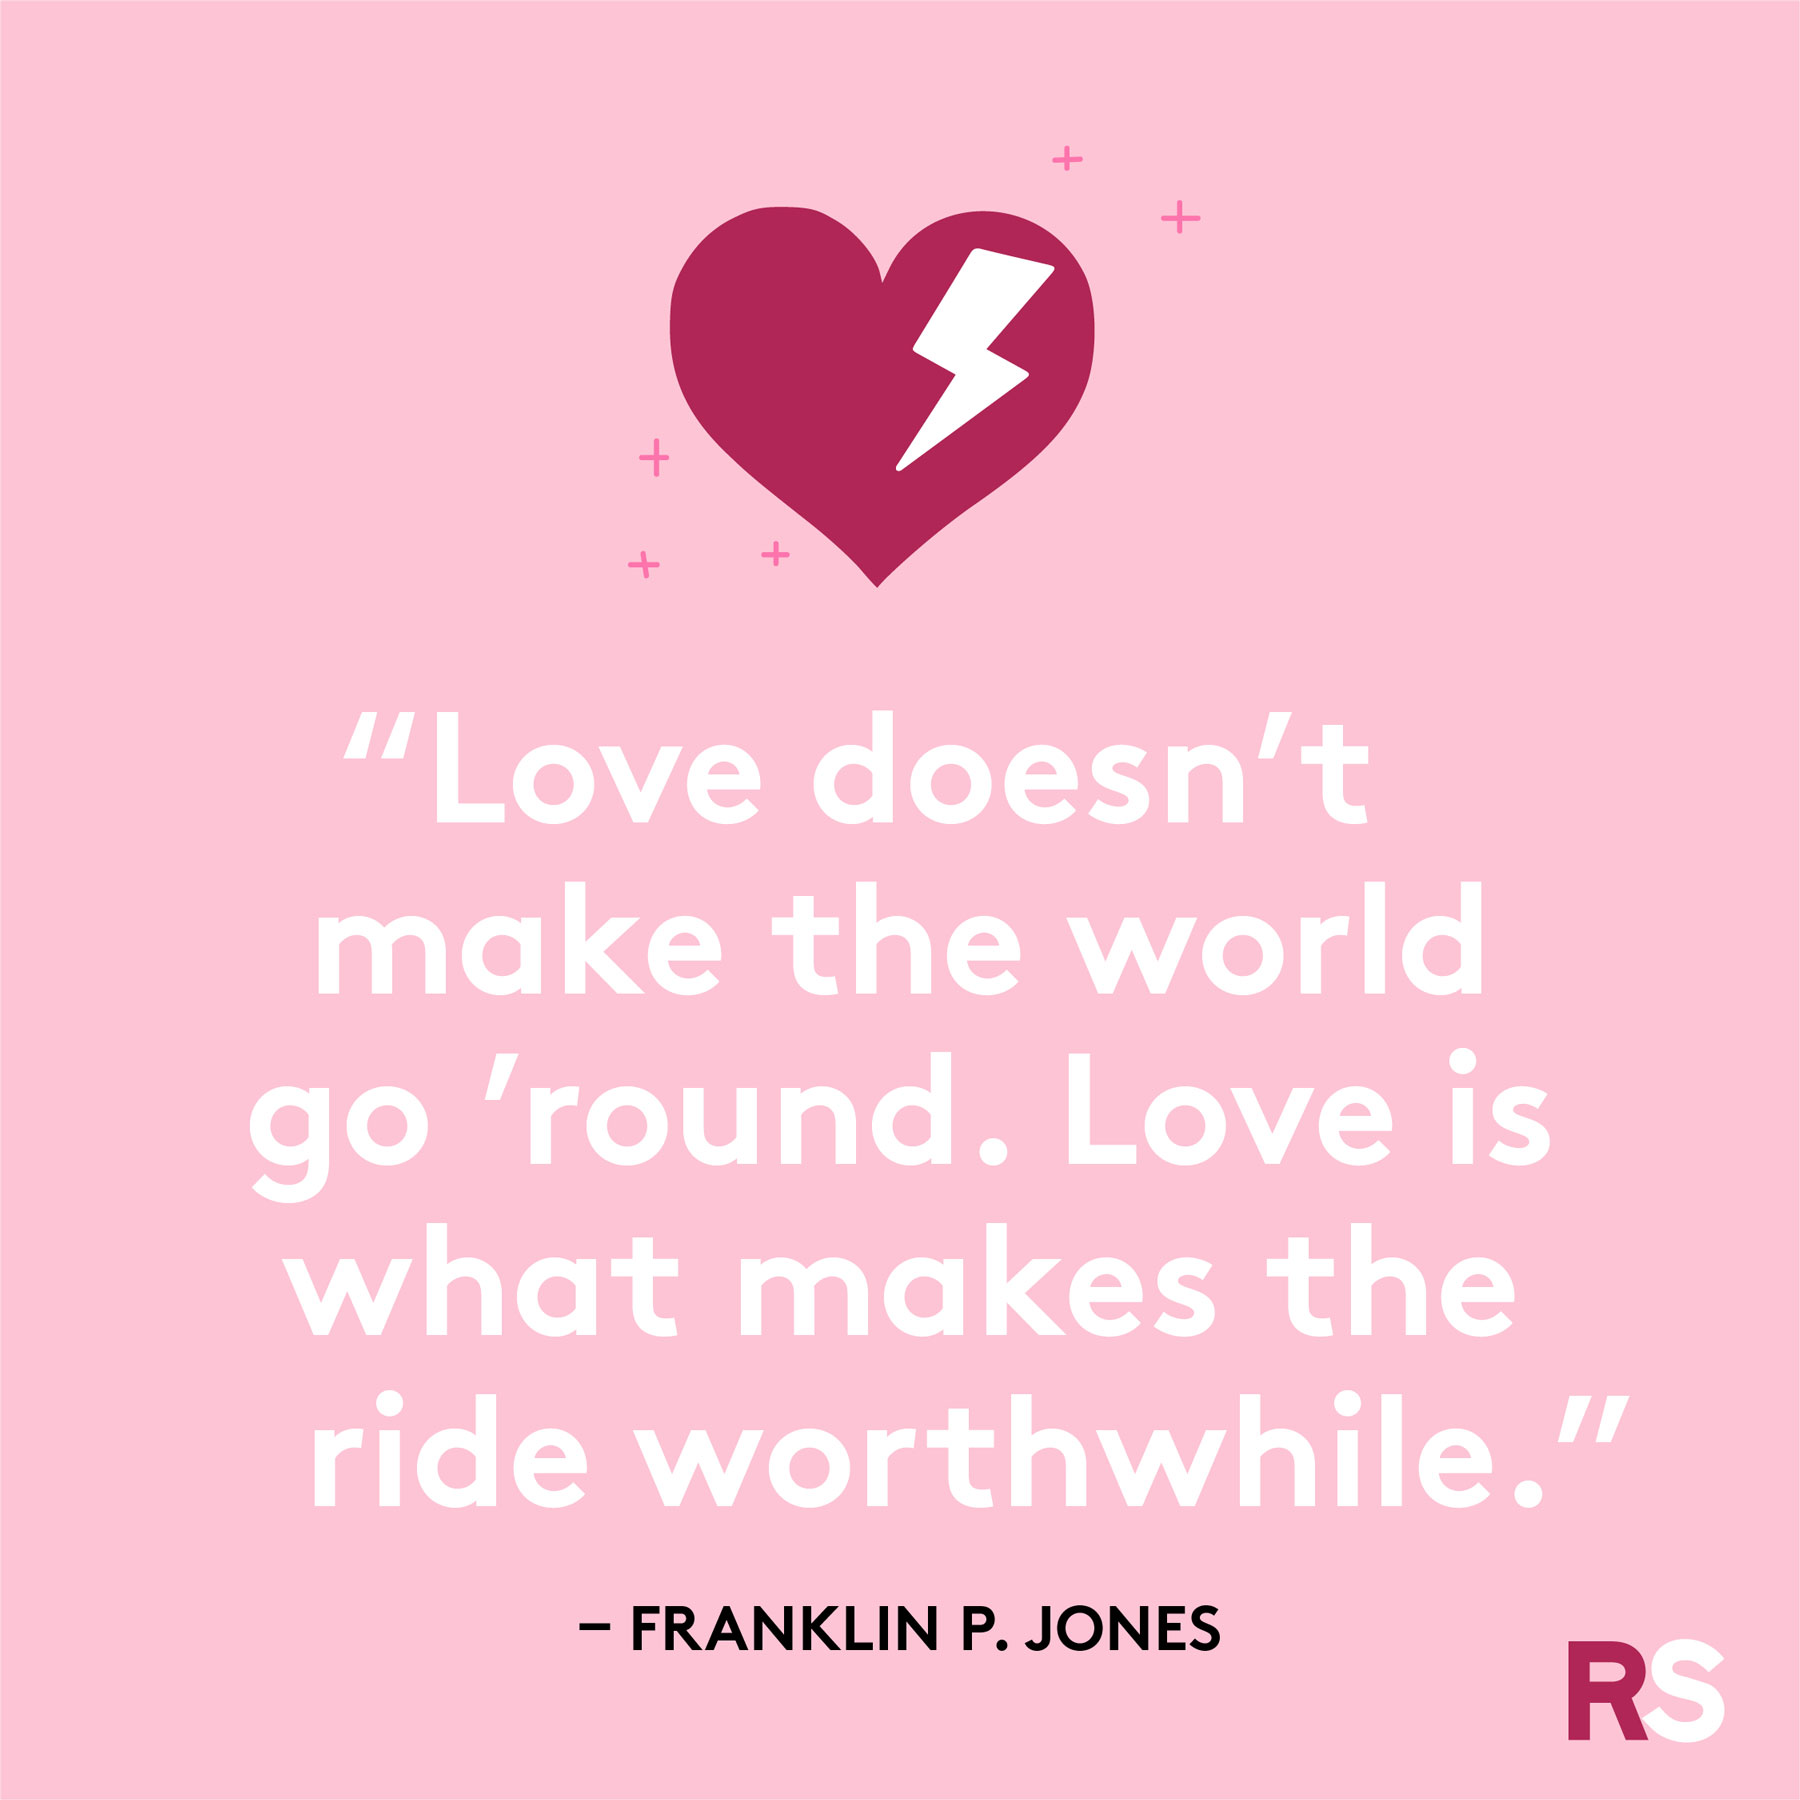 Love quotes, quotes about love - Franklin P. Jones